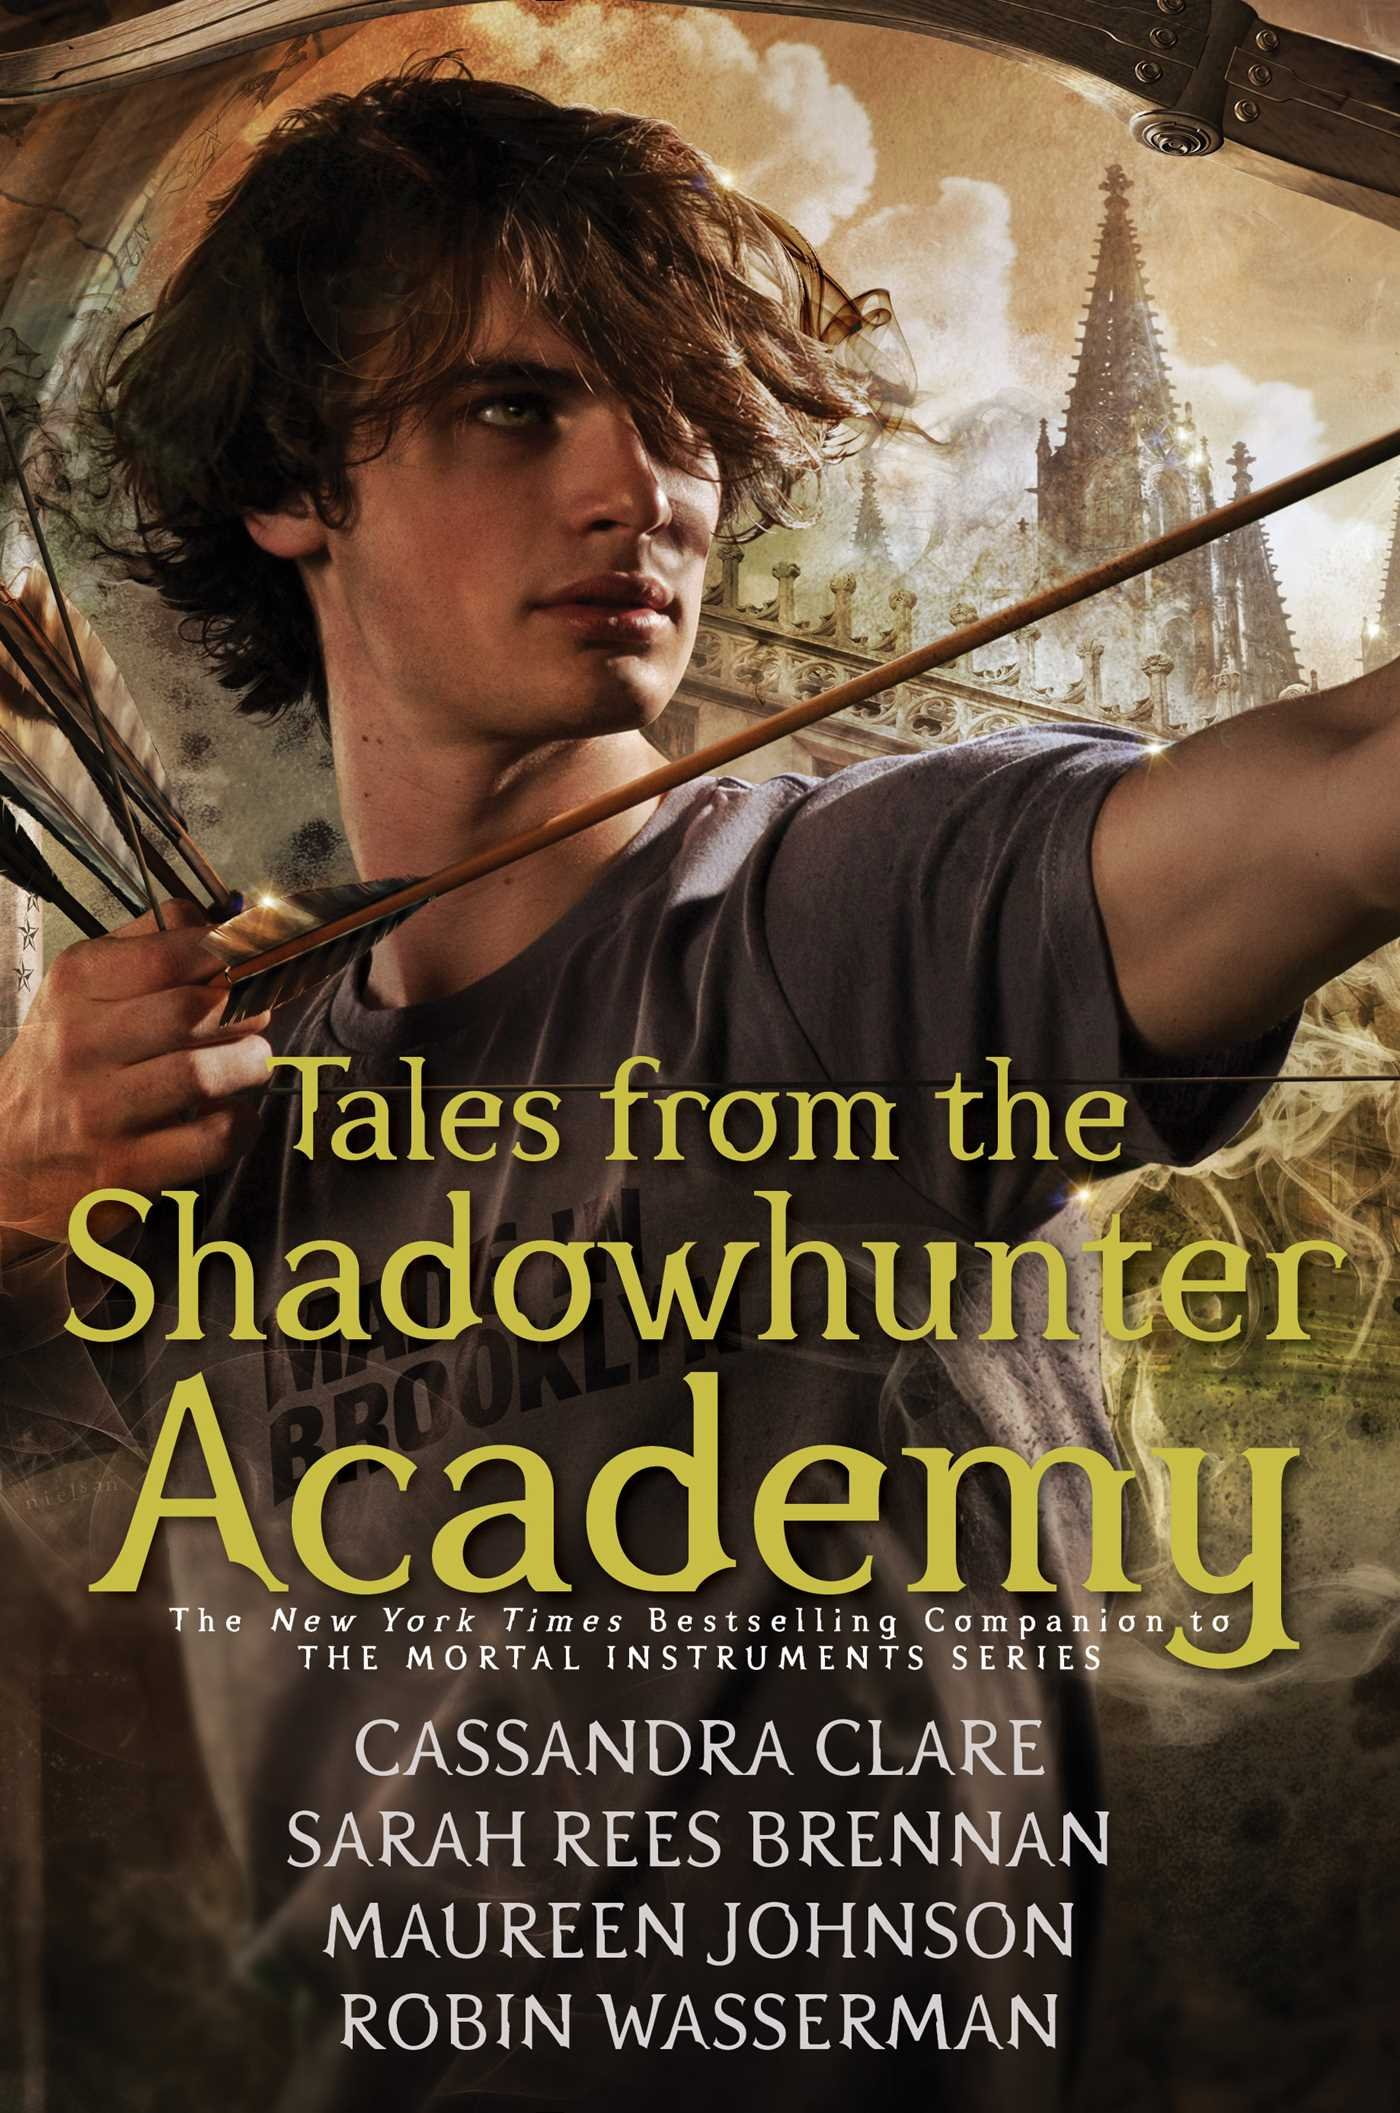 Image result for tales from the shadowhunter academy